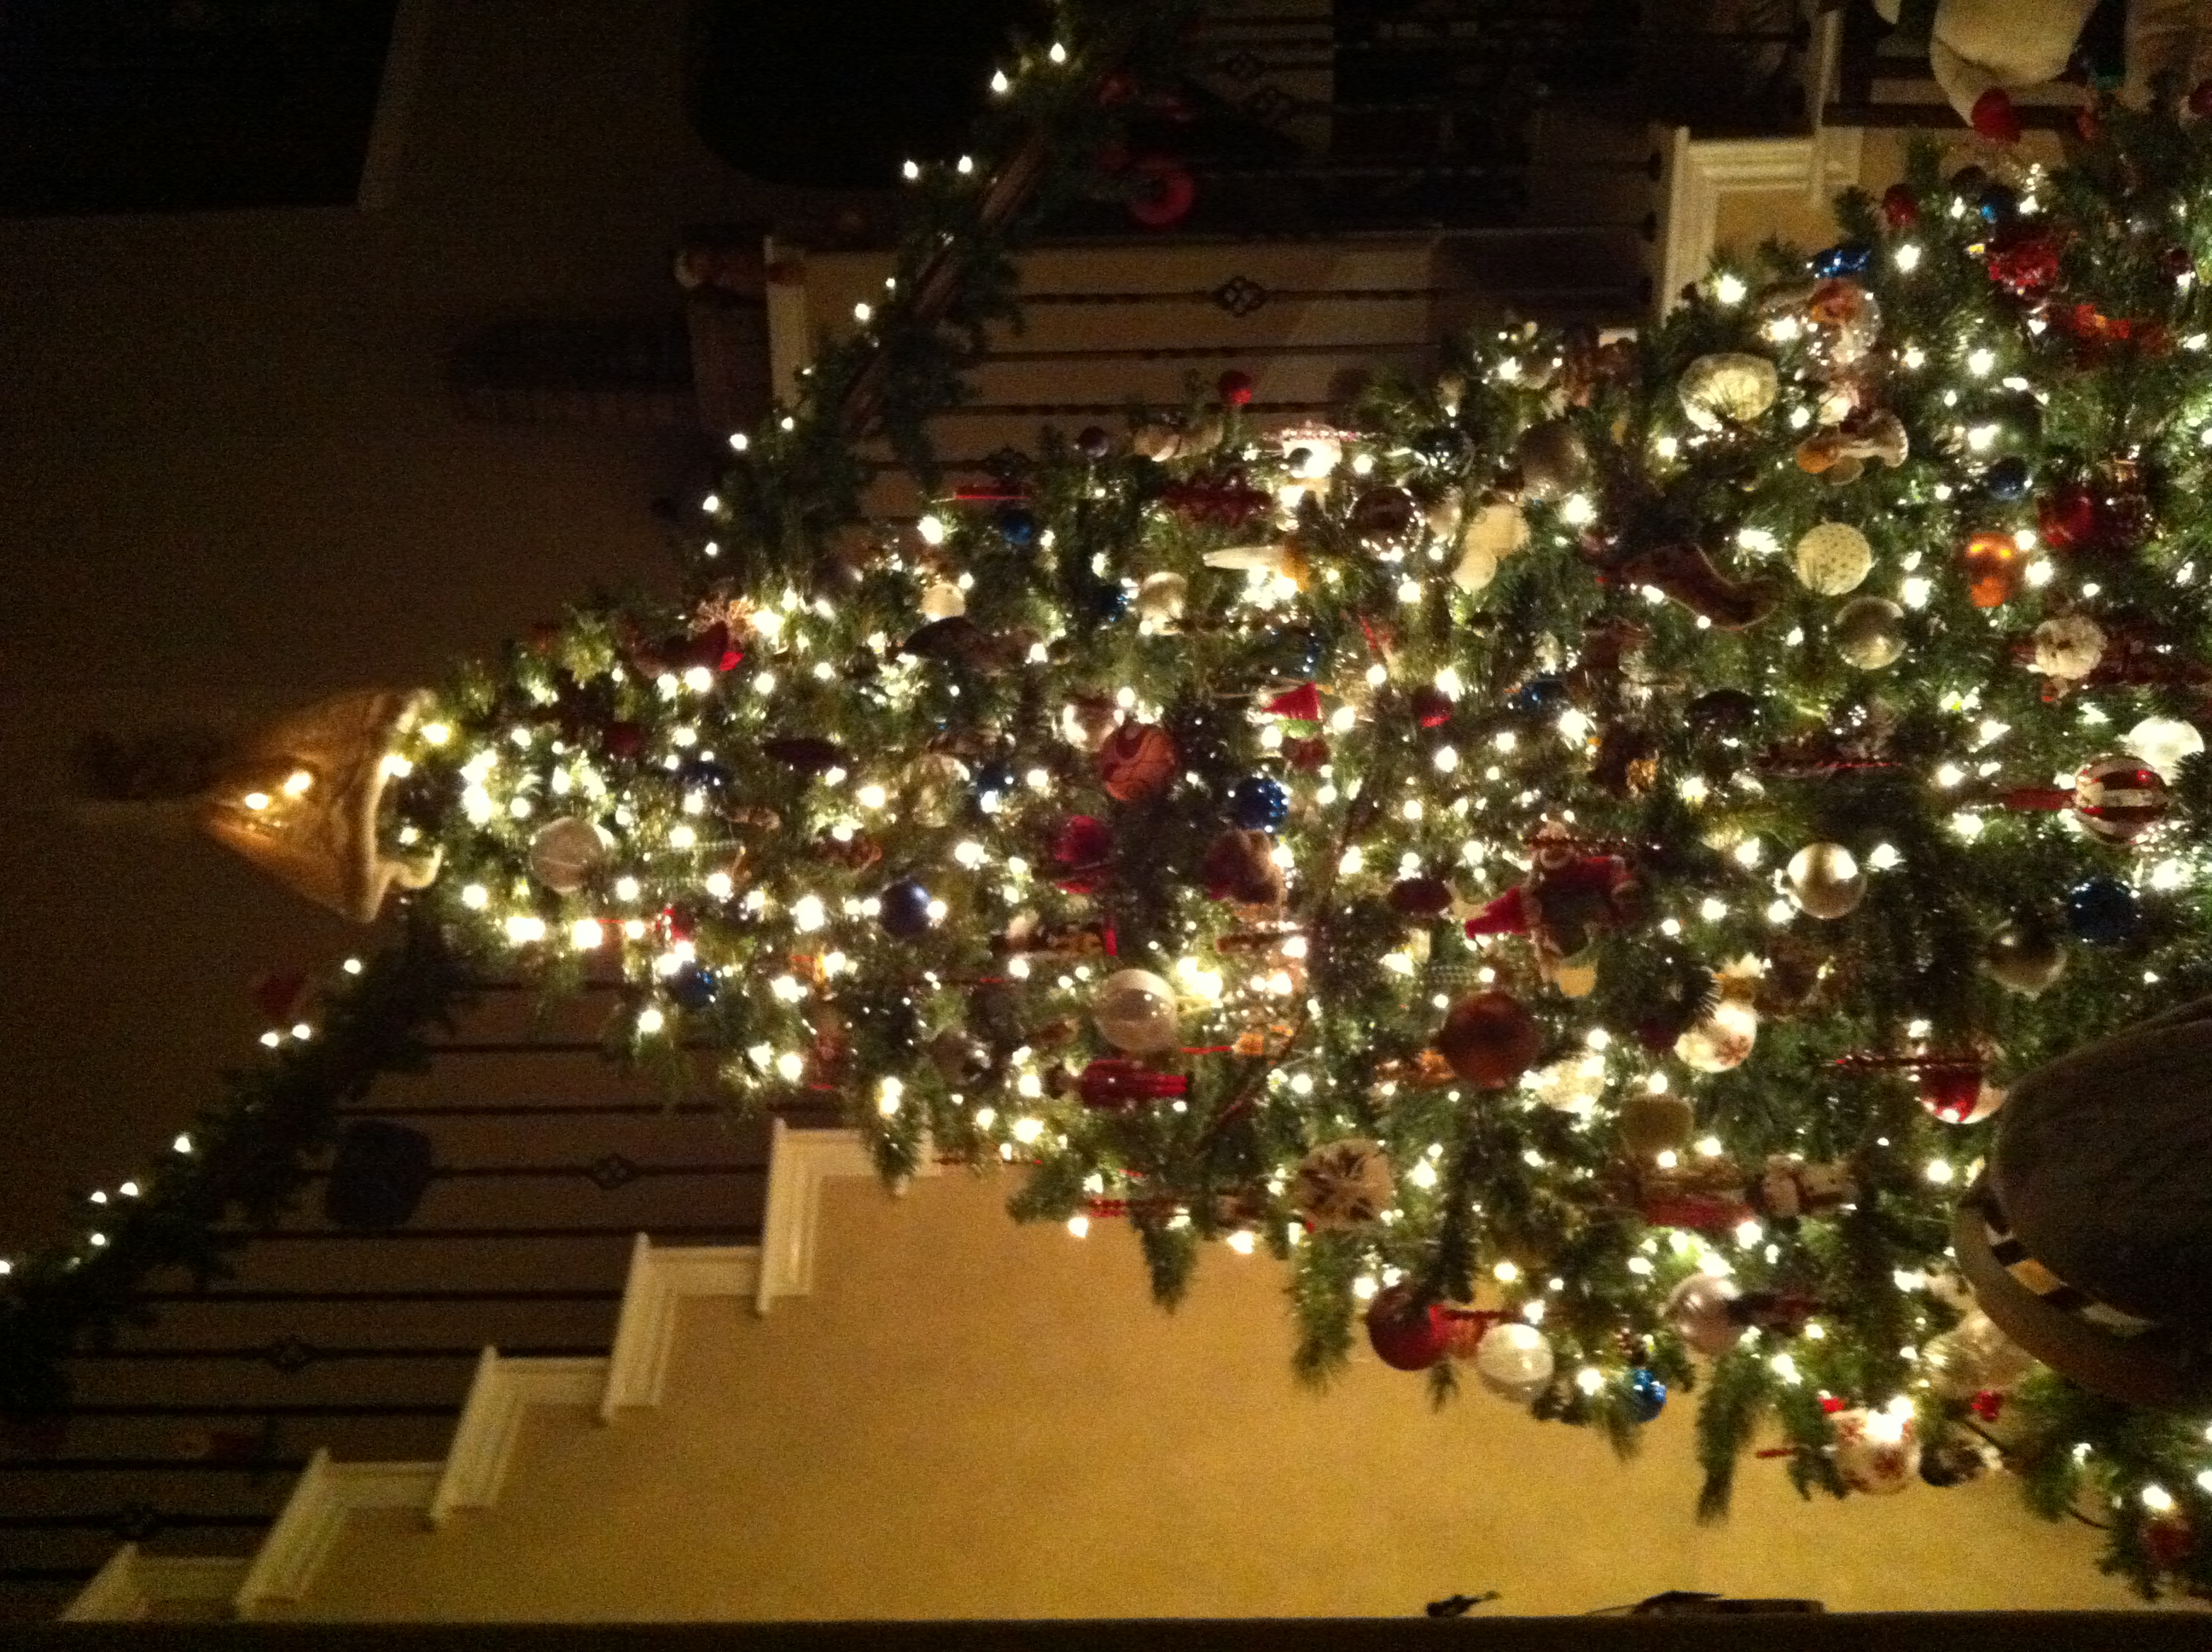 Why do we decorate with christmas lights - And Not Only Do We Decorate Our Trees Inside We Also Put Ornaments On The Trees Outside Along With The Reindeer Moose And Snowman That Light Up Our